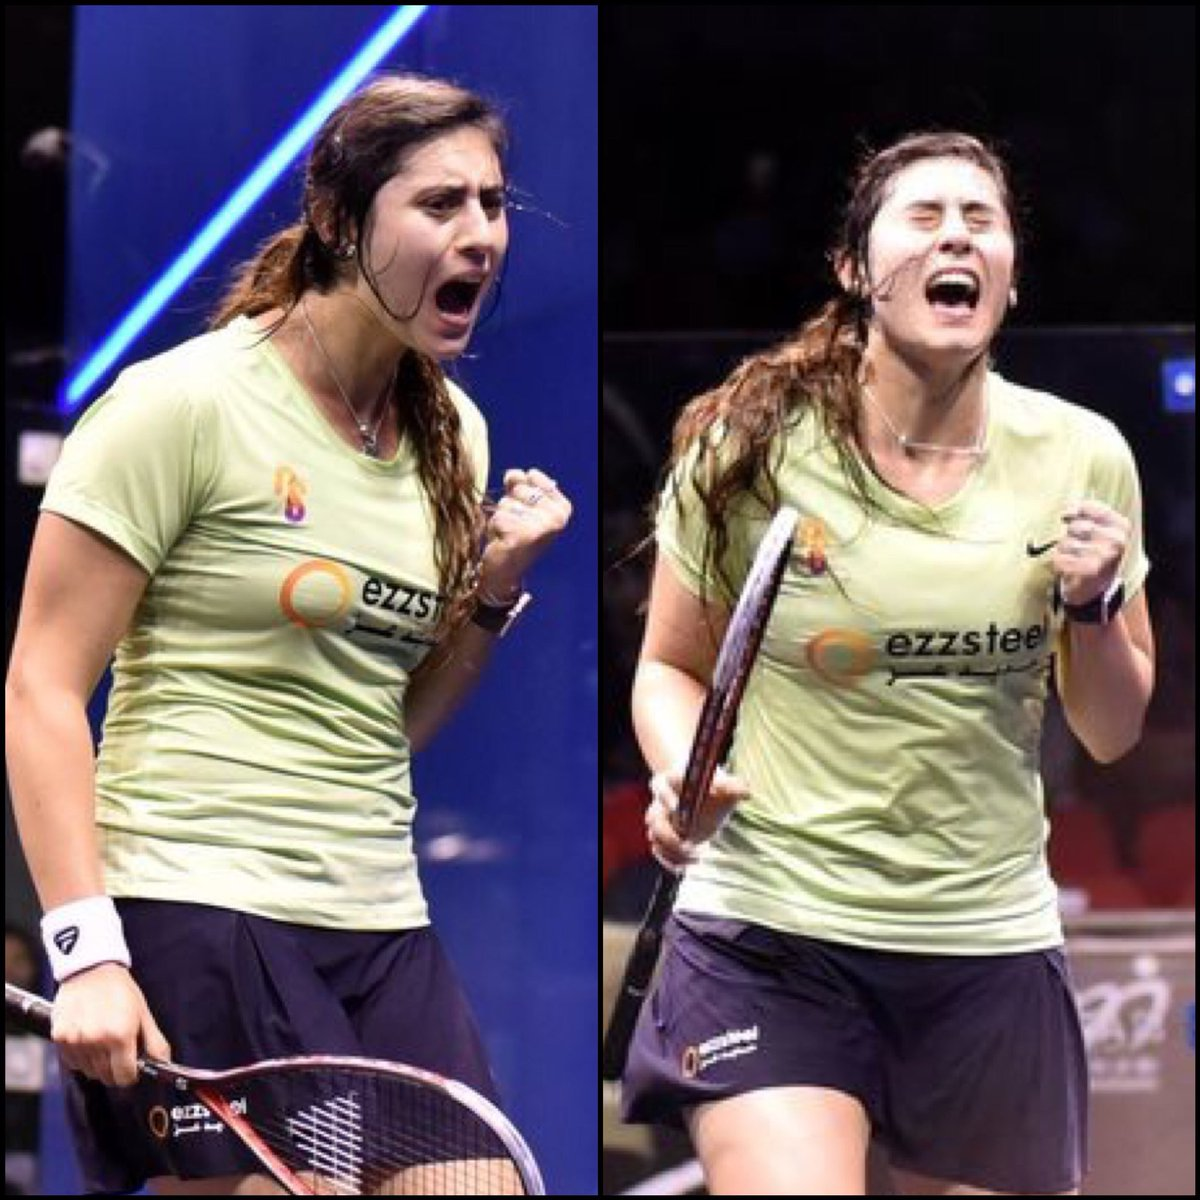 @noursherbini  Fight Fight... Even if its not your day. Through to the Hong Kong 🇭🇰 Final #ezzsteel #tecnifibre #brqthru #teamsherb